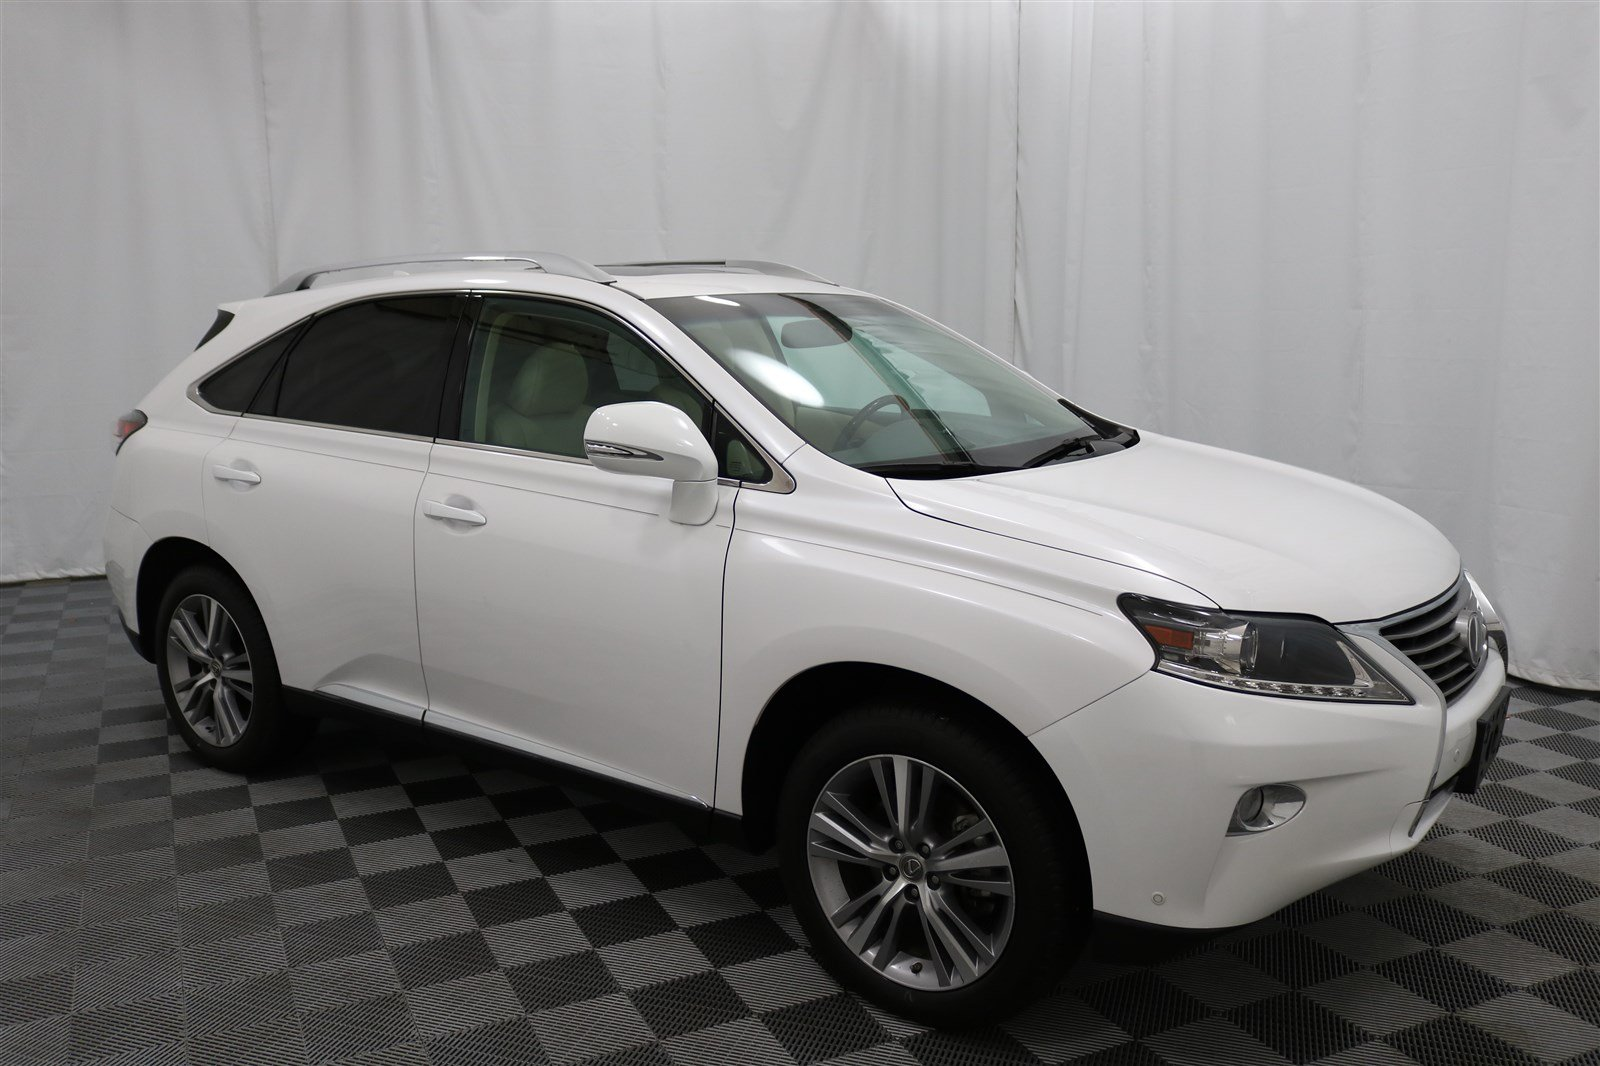 cam moonroof inventory awd used backup owned sport lexus utility pre rx navigation